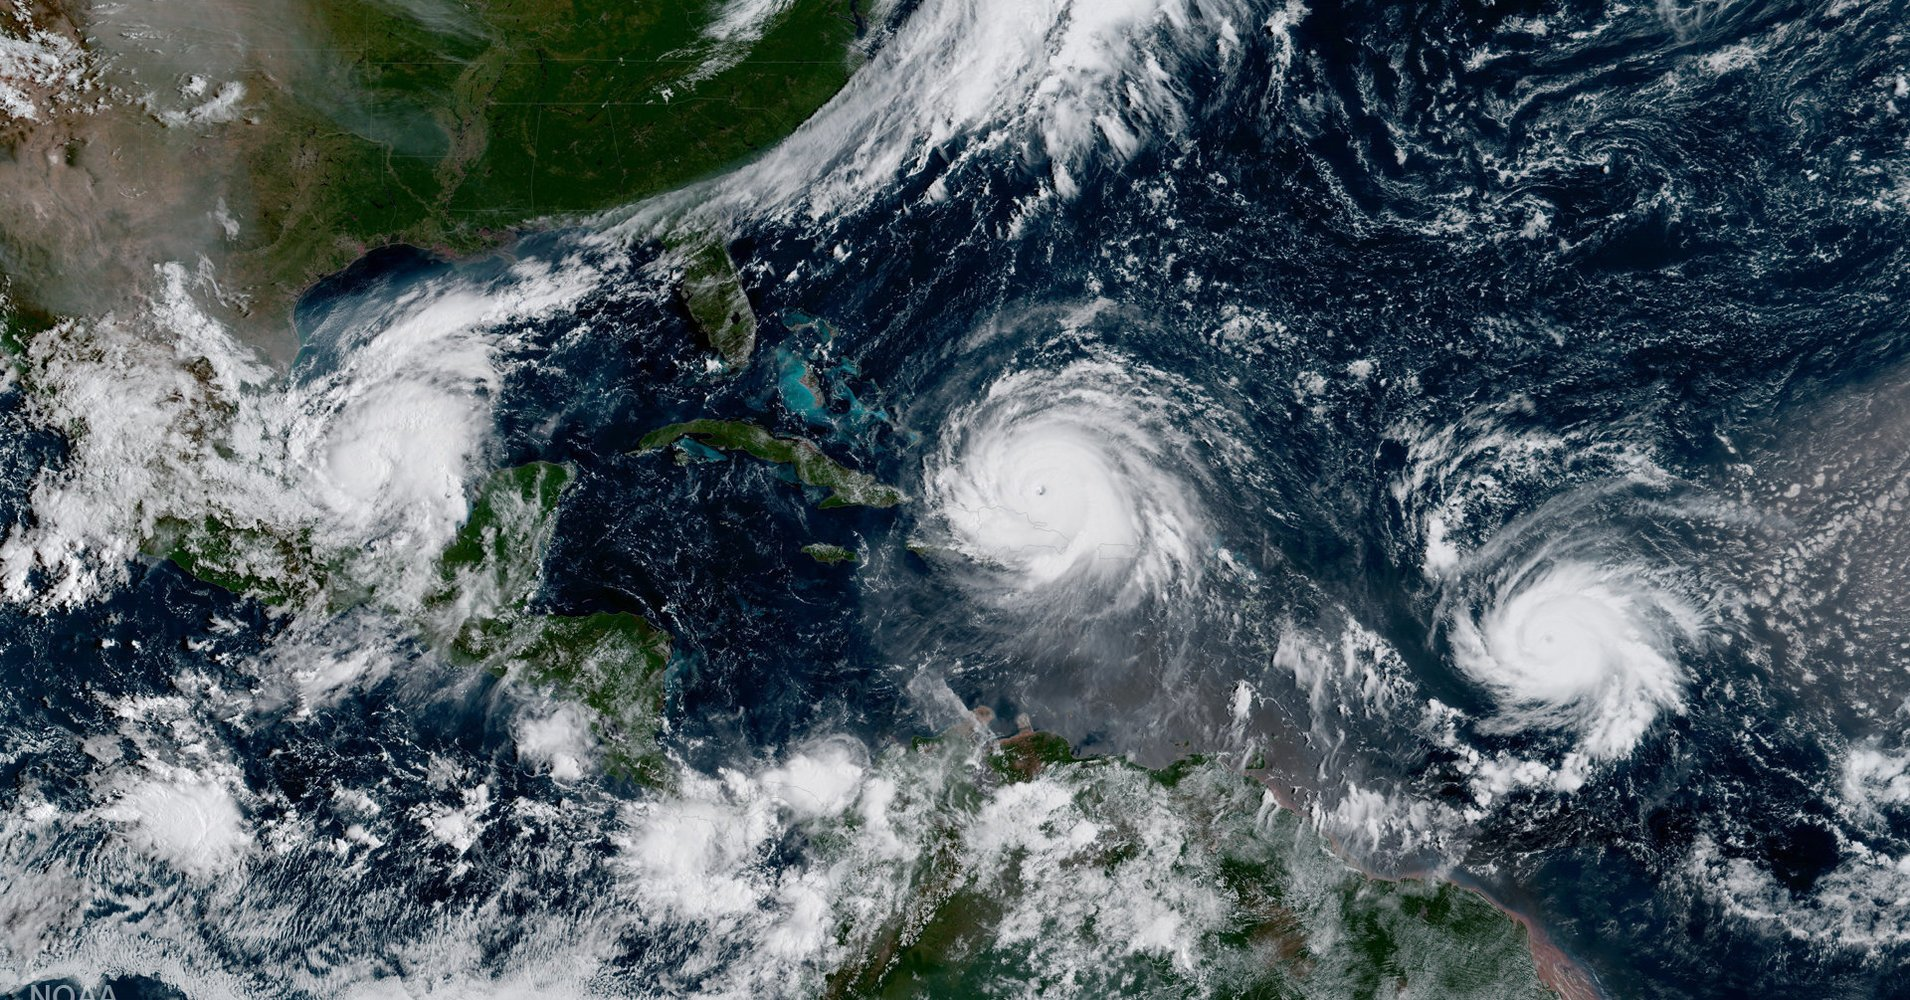 Let's not forget that scientists warned us it could be a nasty hurricane season https://t.co/ga2KfoFsq6 https://t.co/Sp9wubz6y7